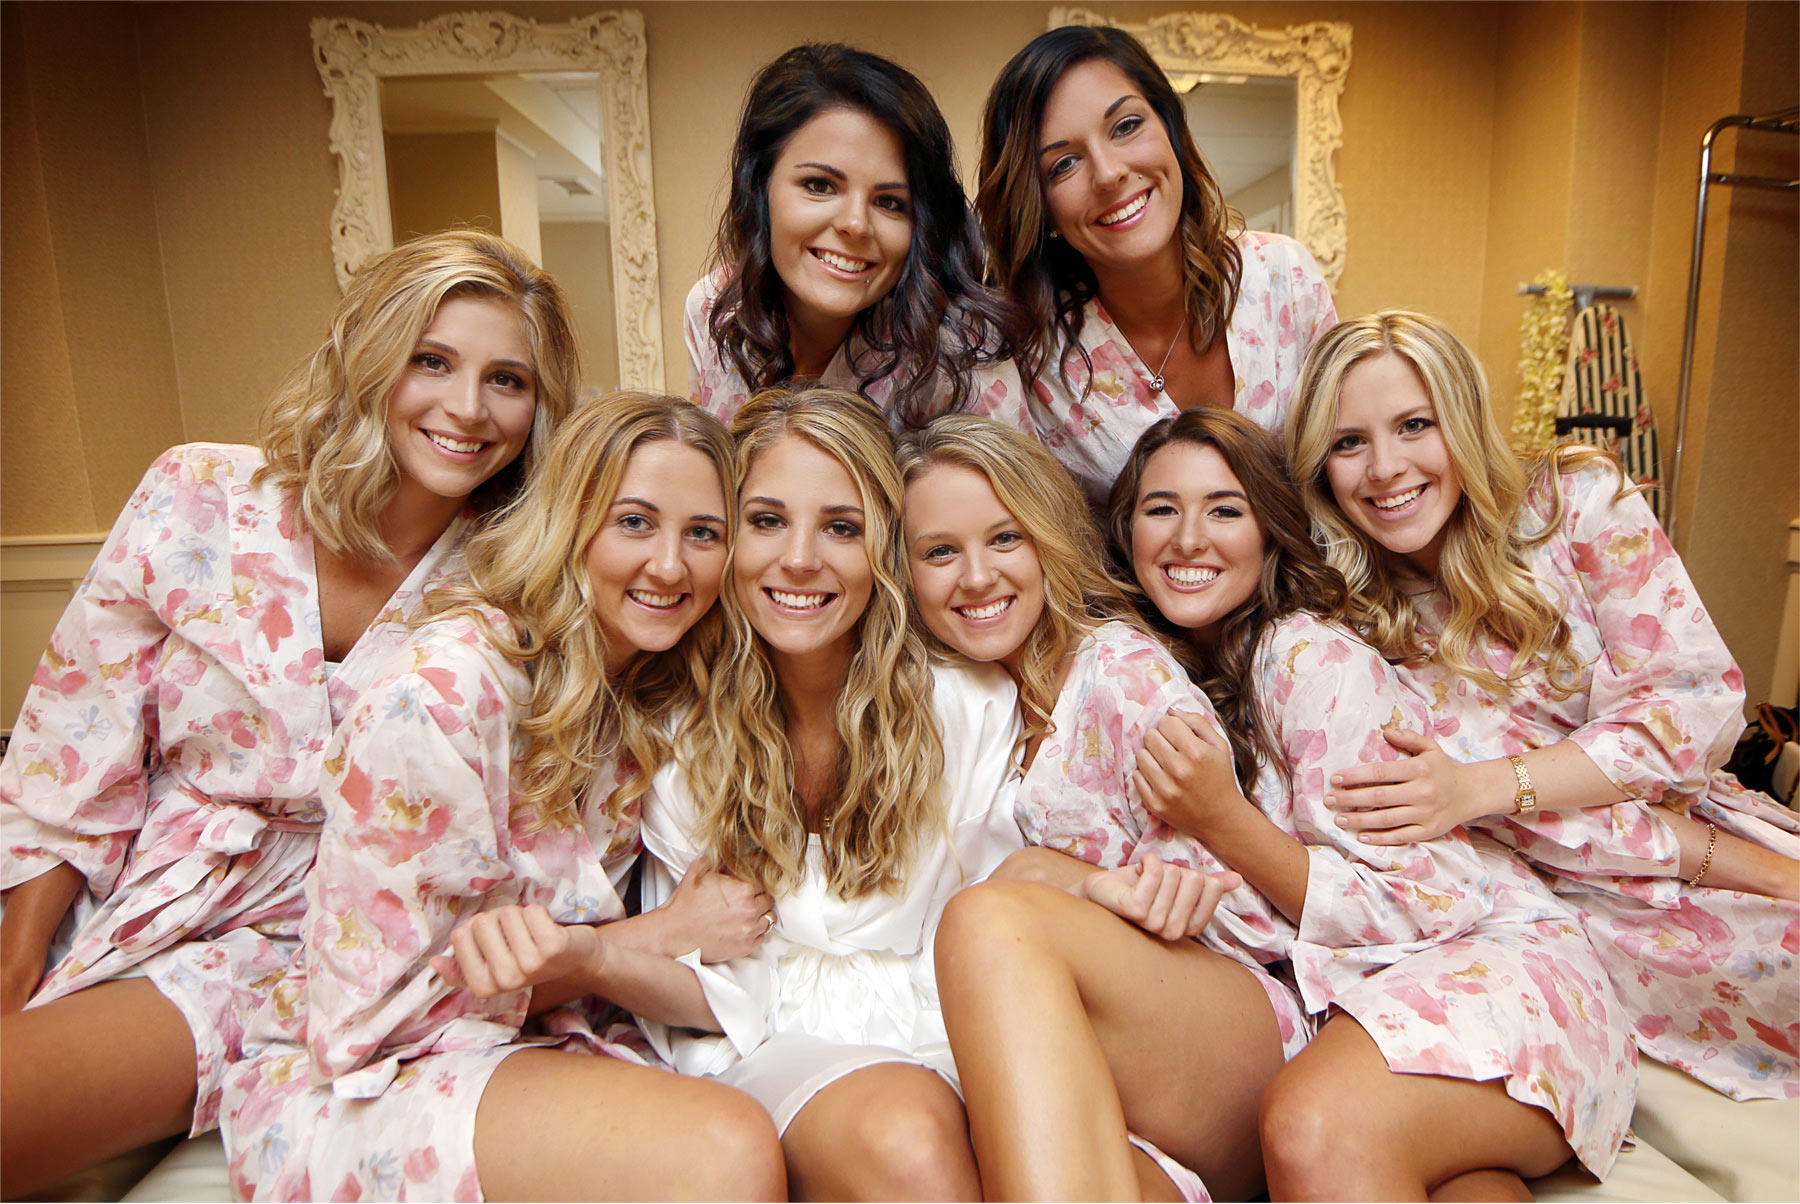 01-Minneapolis-Minnesota-Wedding-Photographer-by-Andrew-Vick-Photography-Summer-Calhoun-Beach-Club-Getting-Ready-Bride-Bridesmaids-Robes-Lexie-and-James.jpg